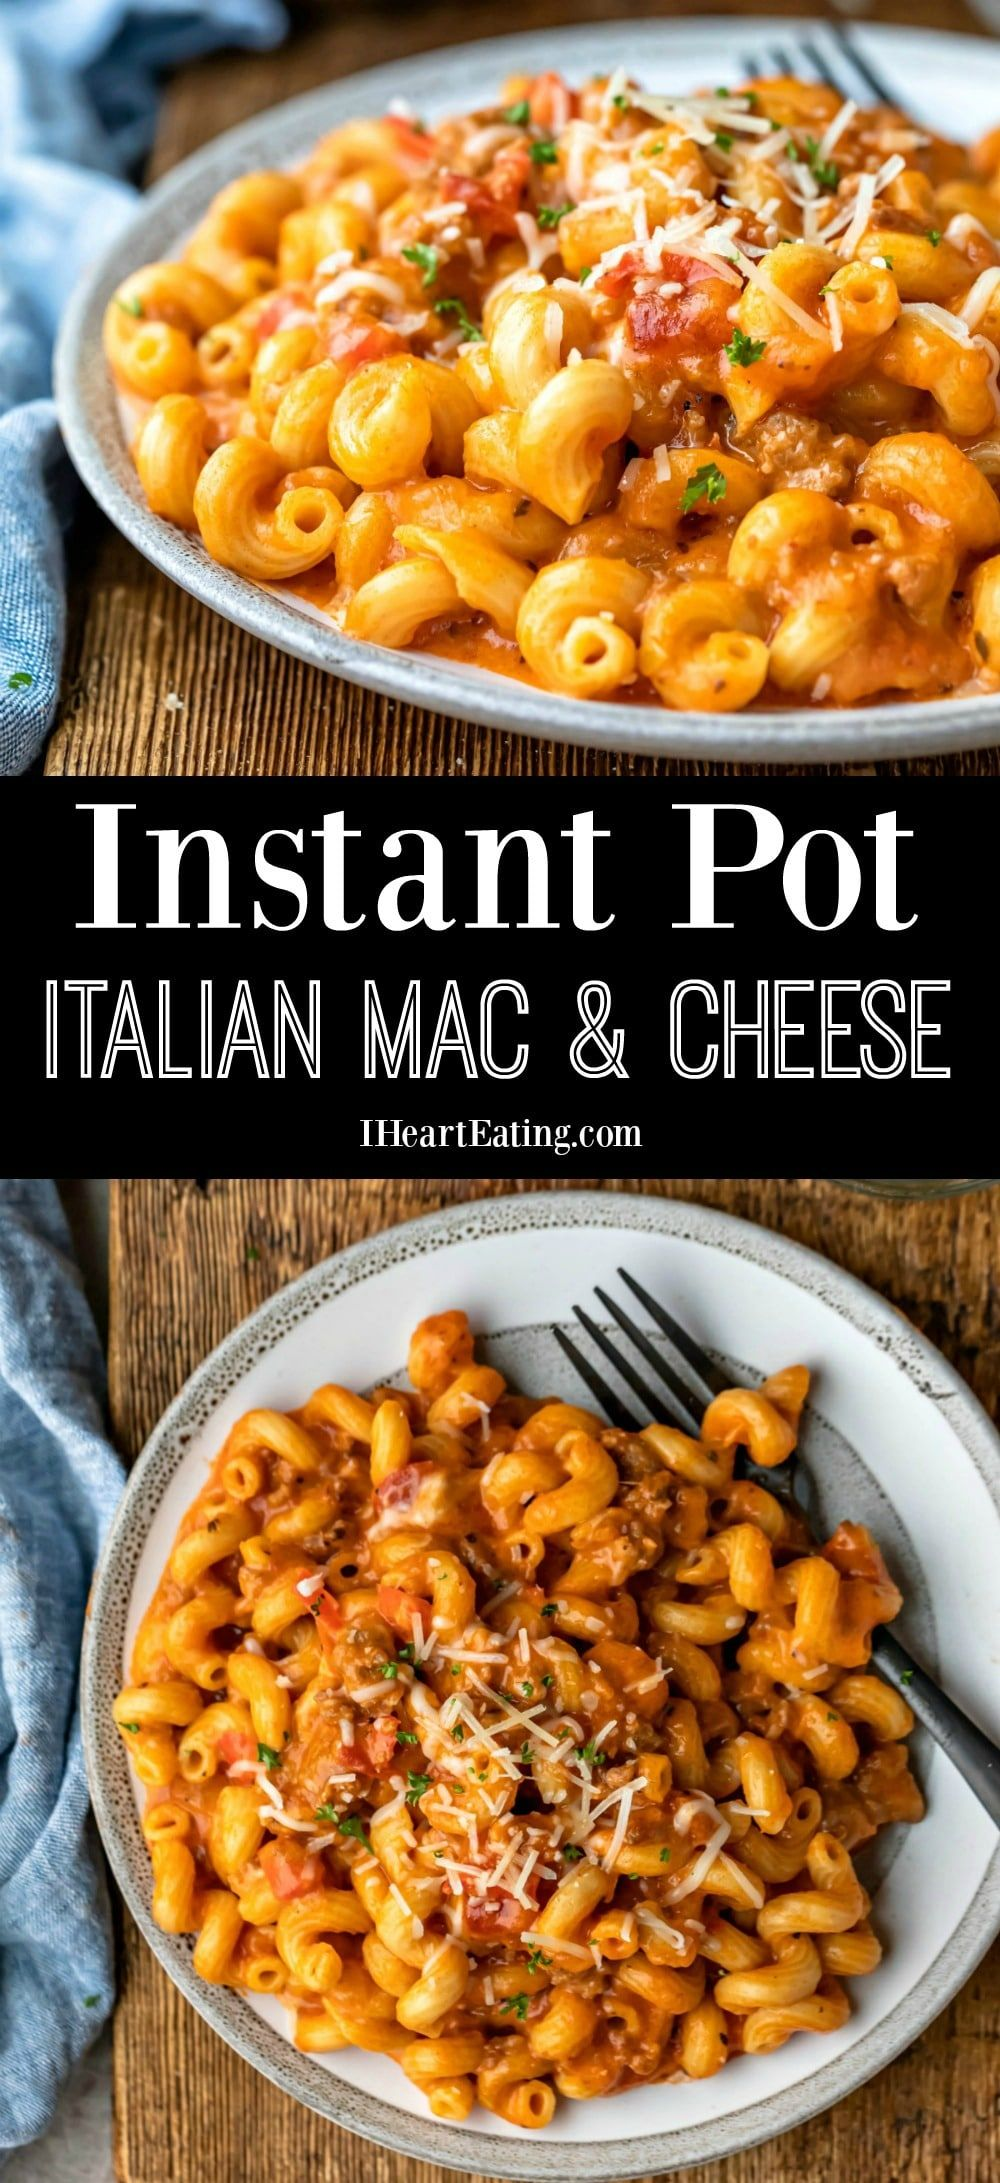 Instant Pot Italian Mac and Cheese | Recipe | Instant pot ...